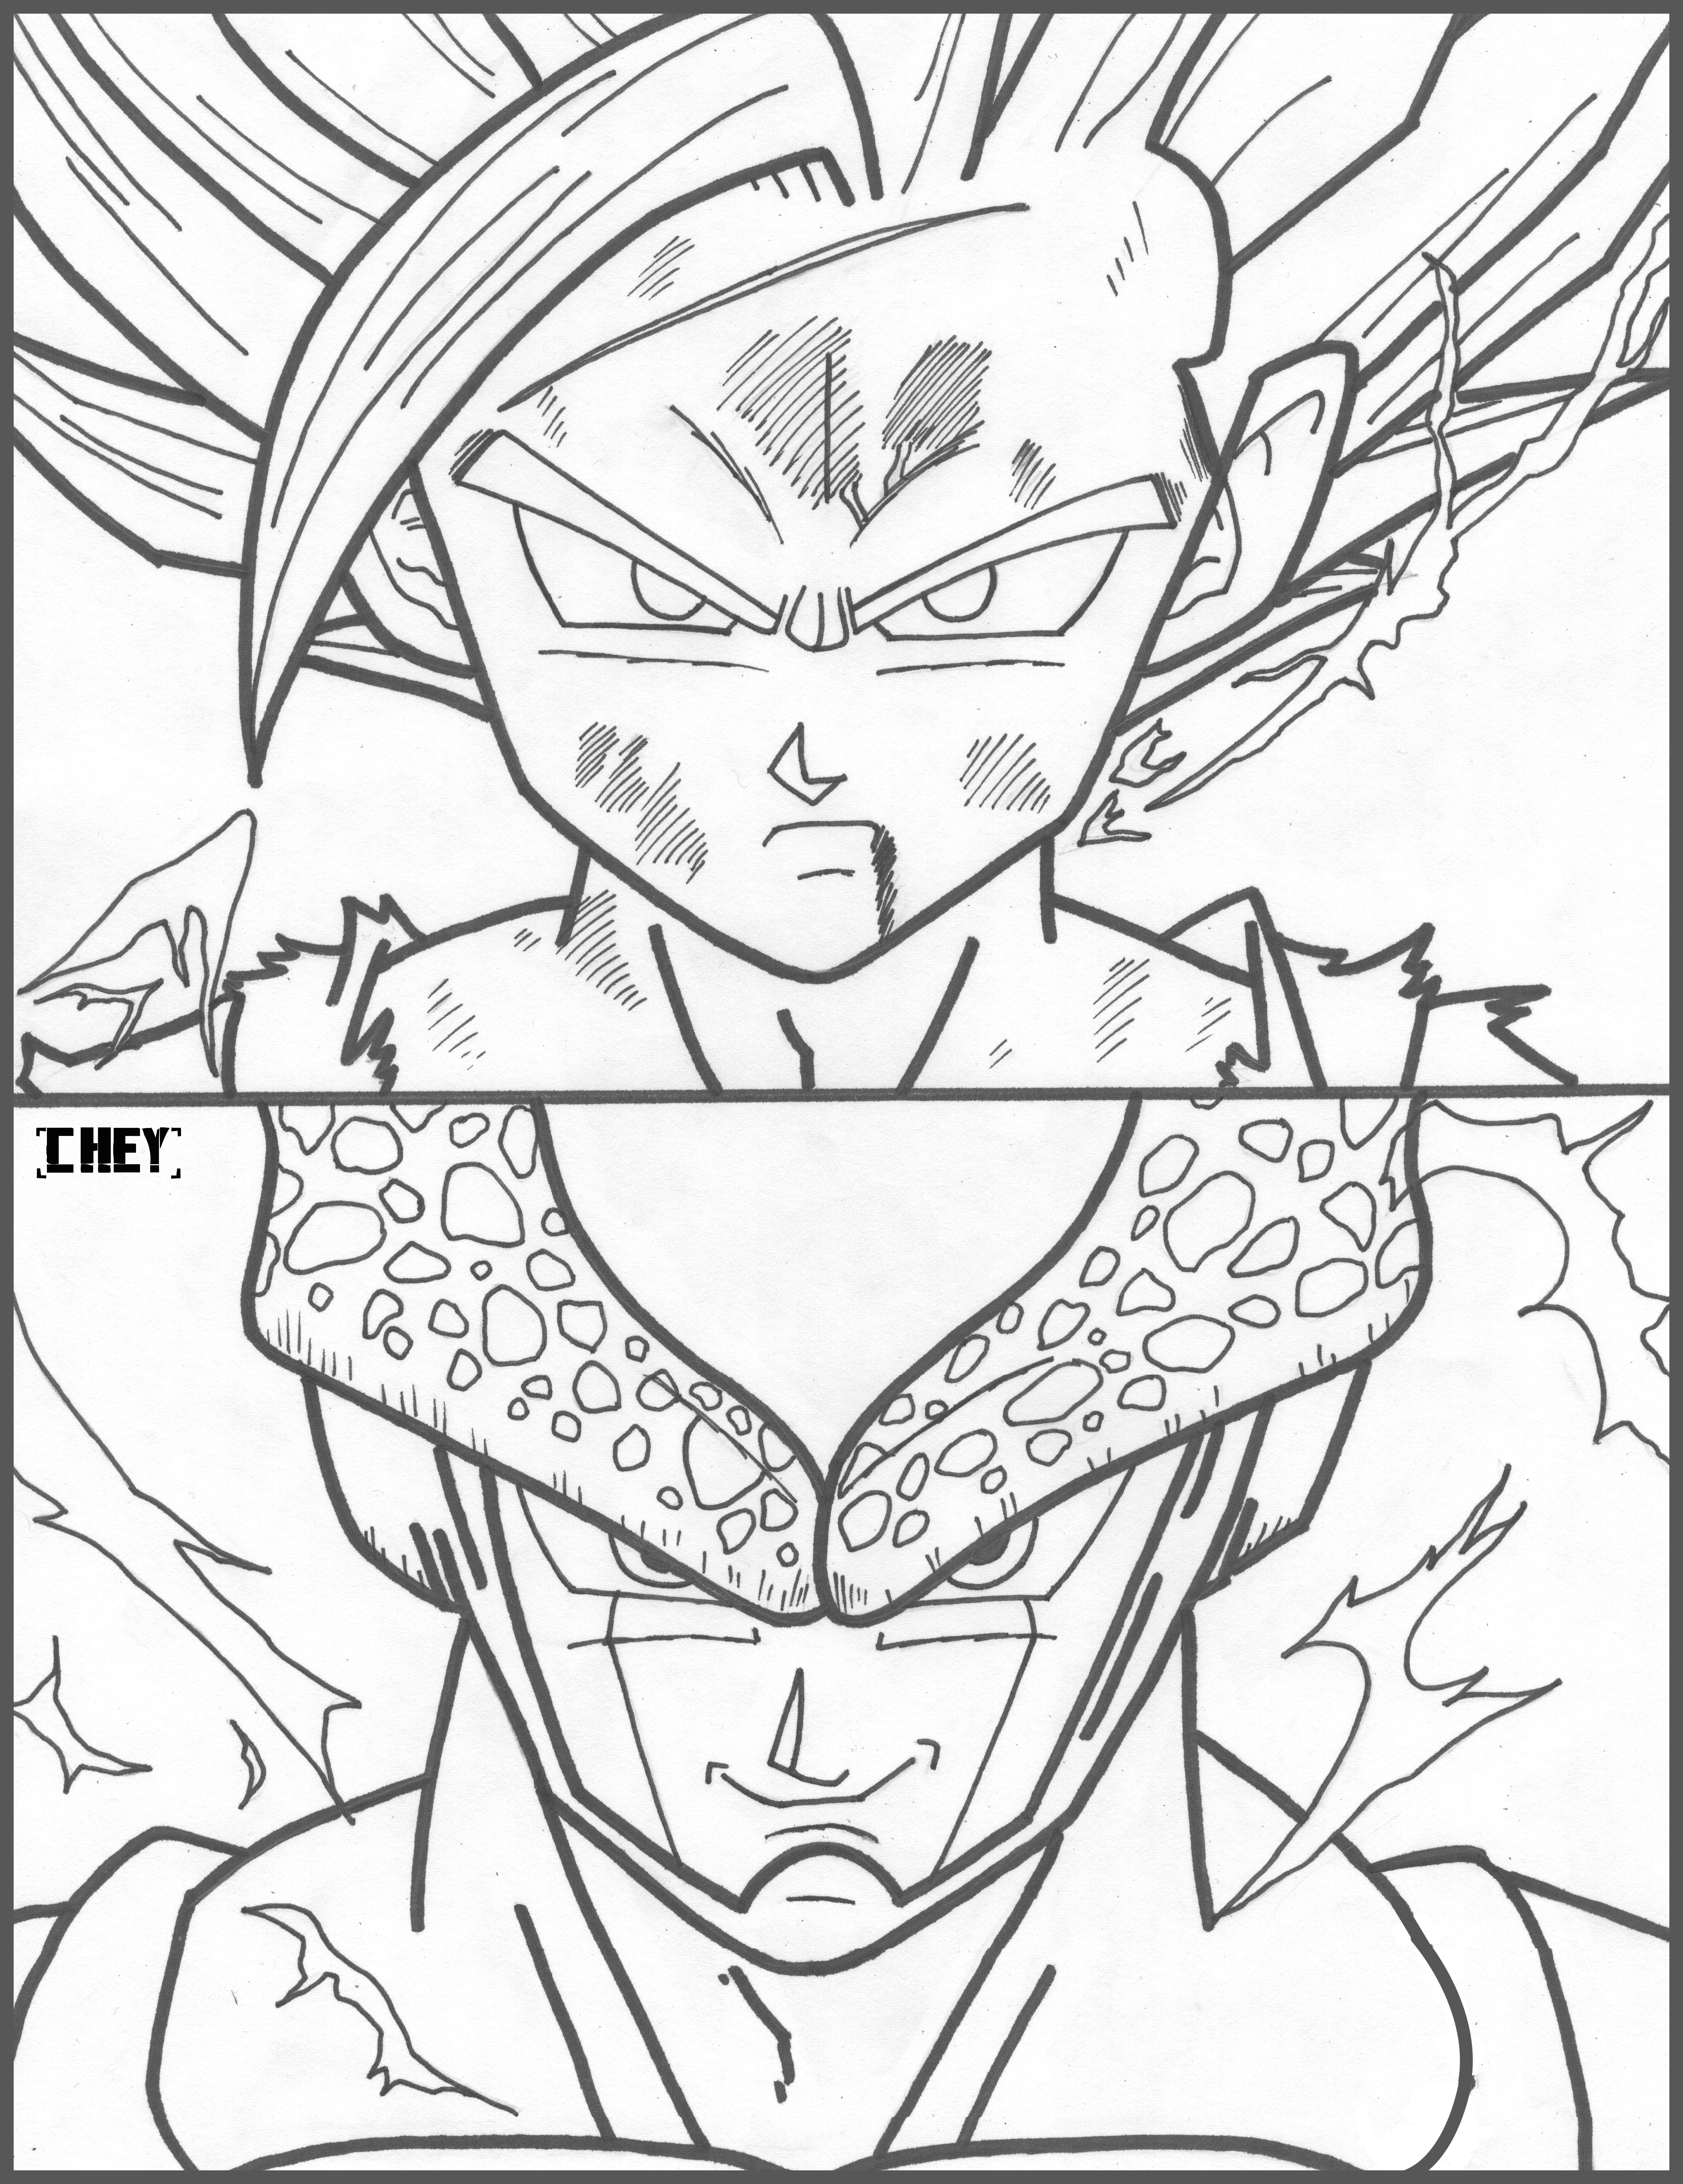 Gohan ssj2 vs super perfect cell by cheygipe on deviantart for Dragon ball z cell coloring pages